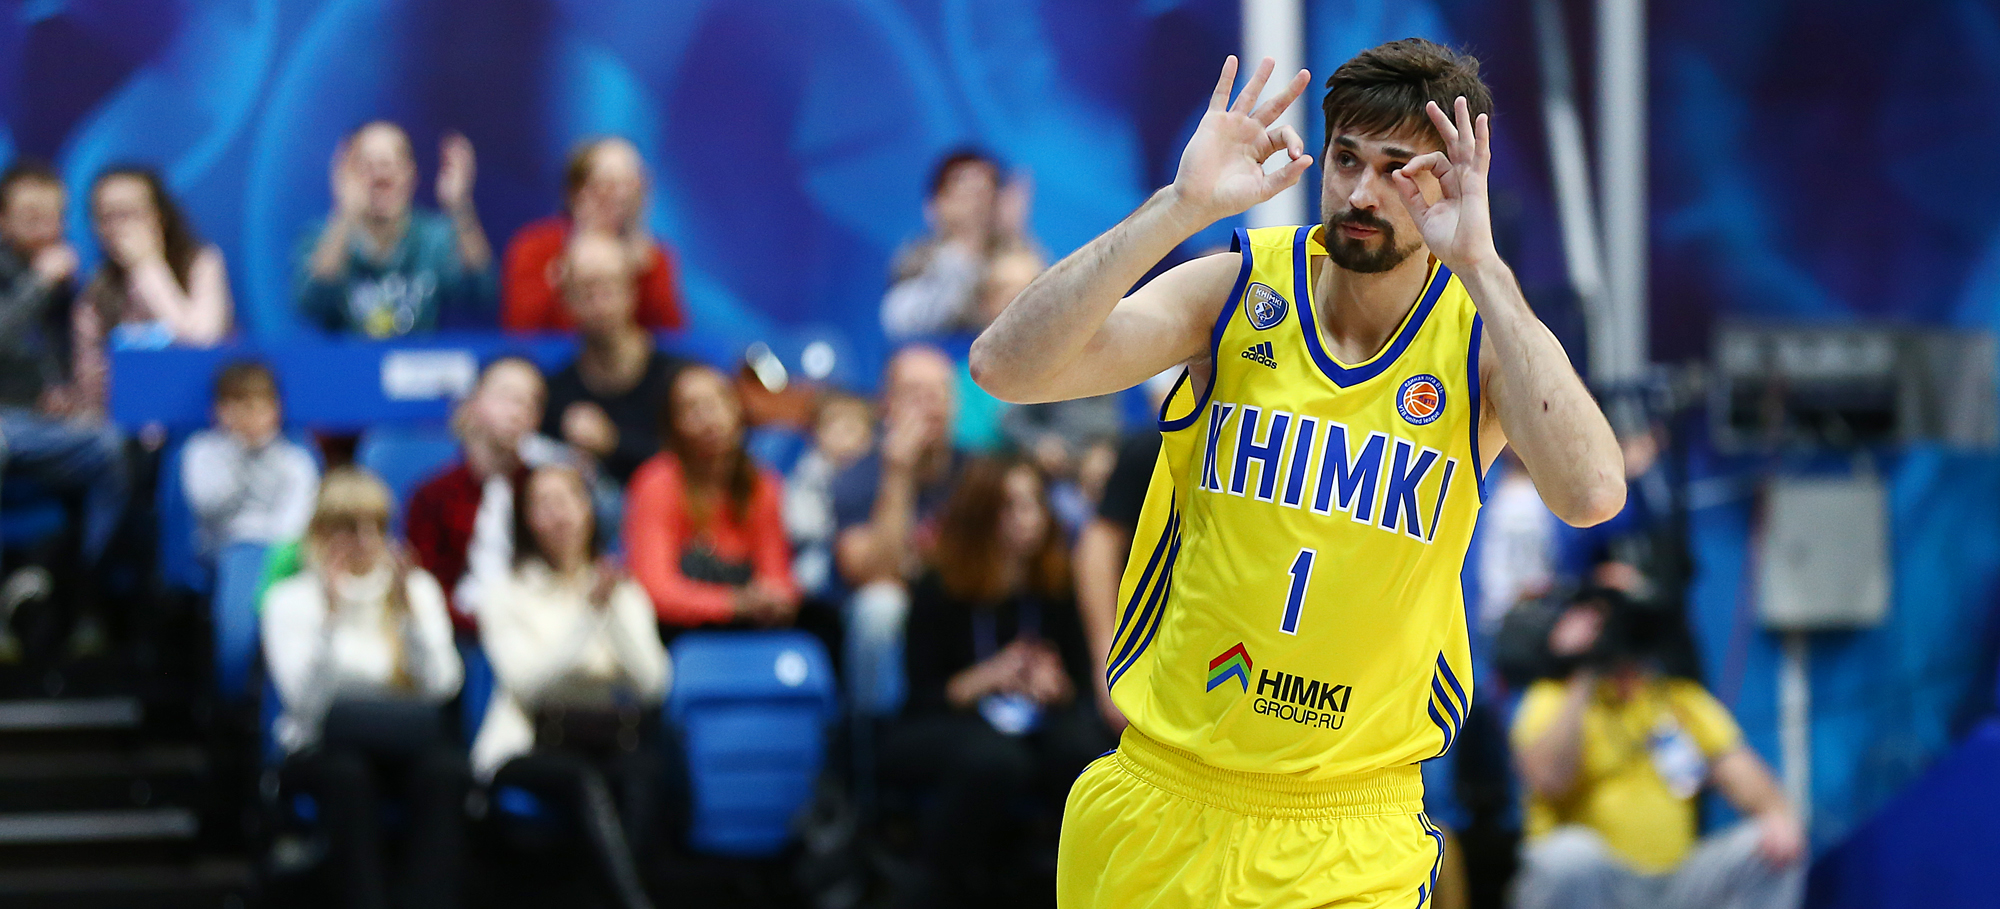 Khimki Ends Kazan's Perfect Start